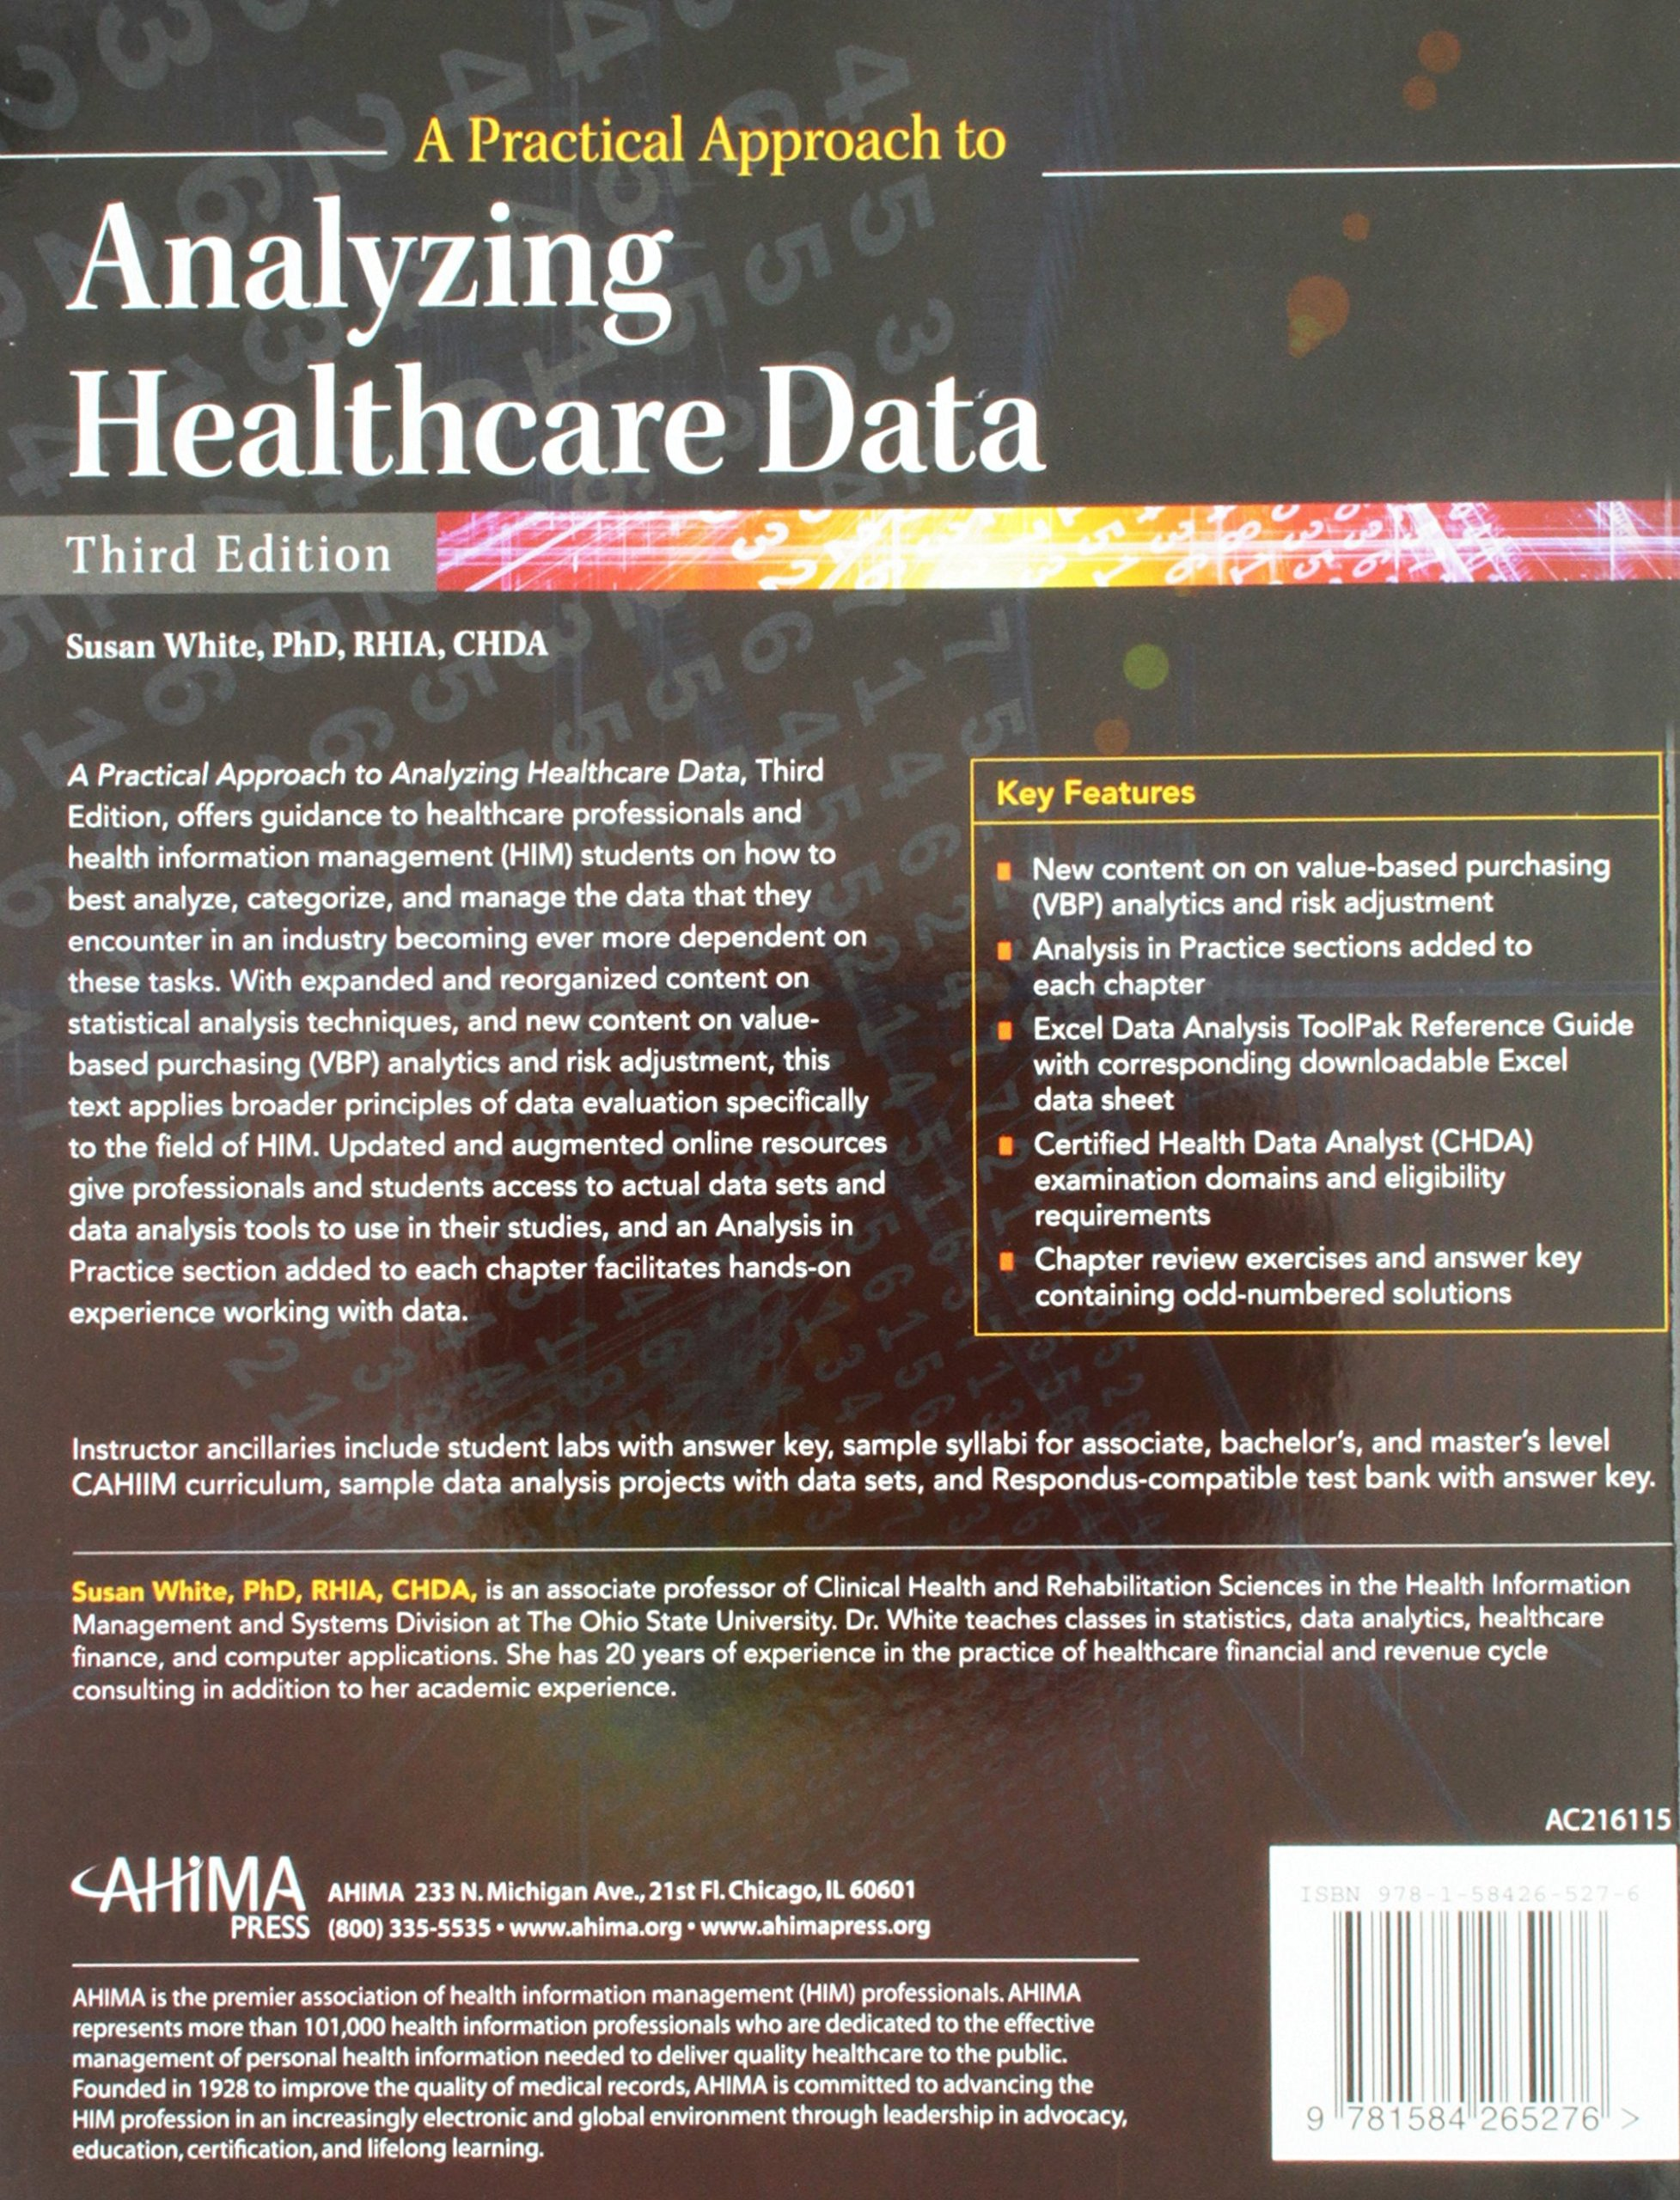 Certified health data analyst acda certification data analyst buy a practical approach to analyzing healthcare data book online at low prices in india a xflitez Choice Image